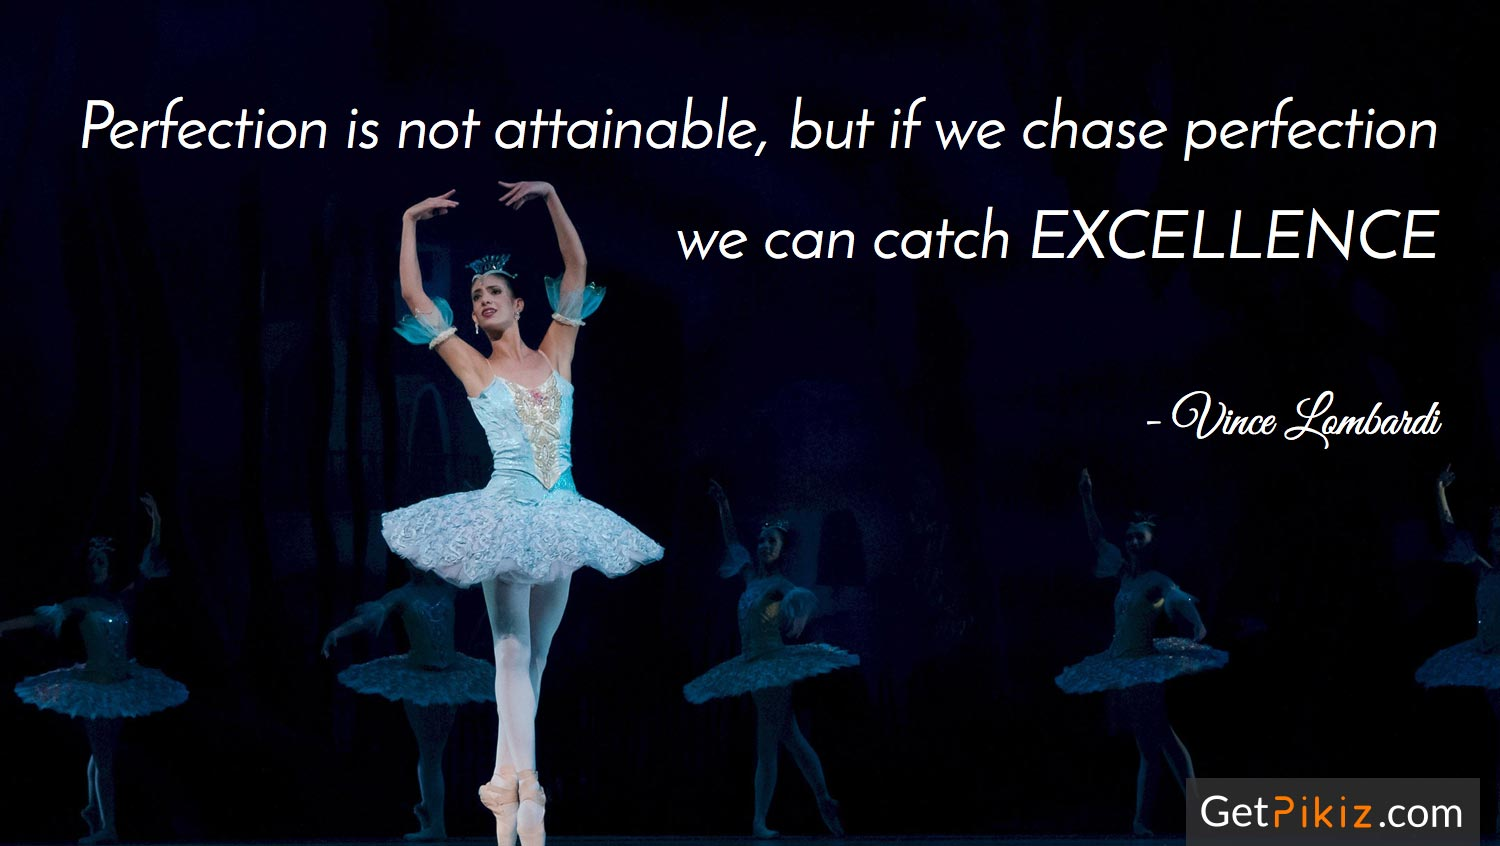 Perfection is not attainable, but if we chase perfection we can catch excellence. - Vince Lombardi